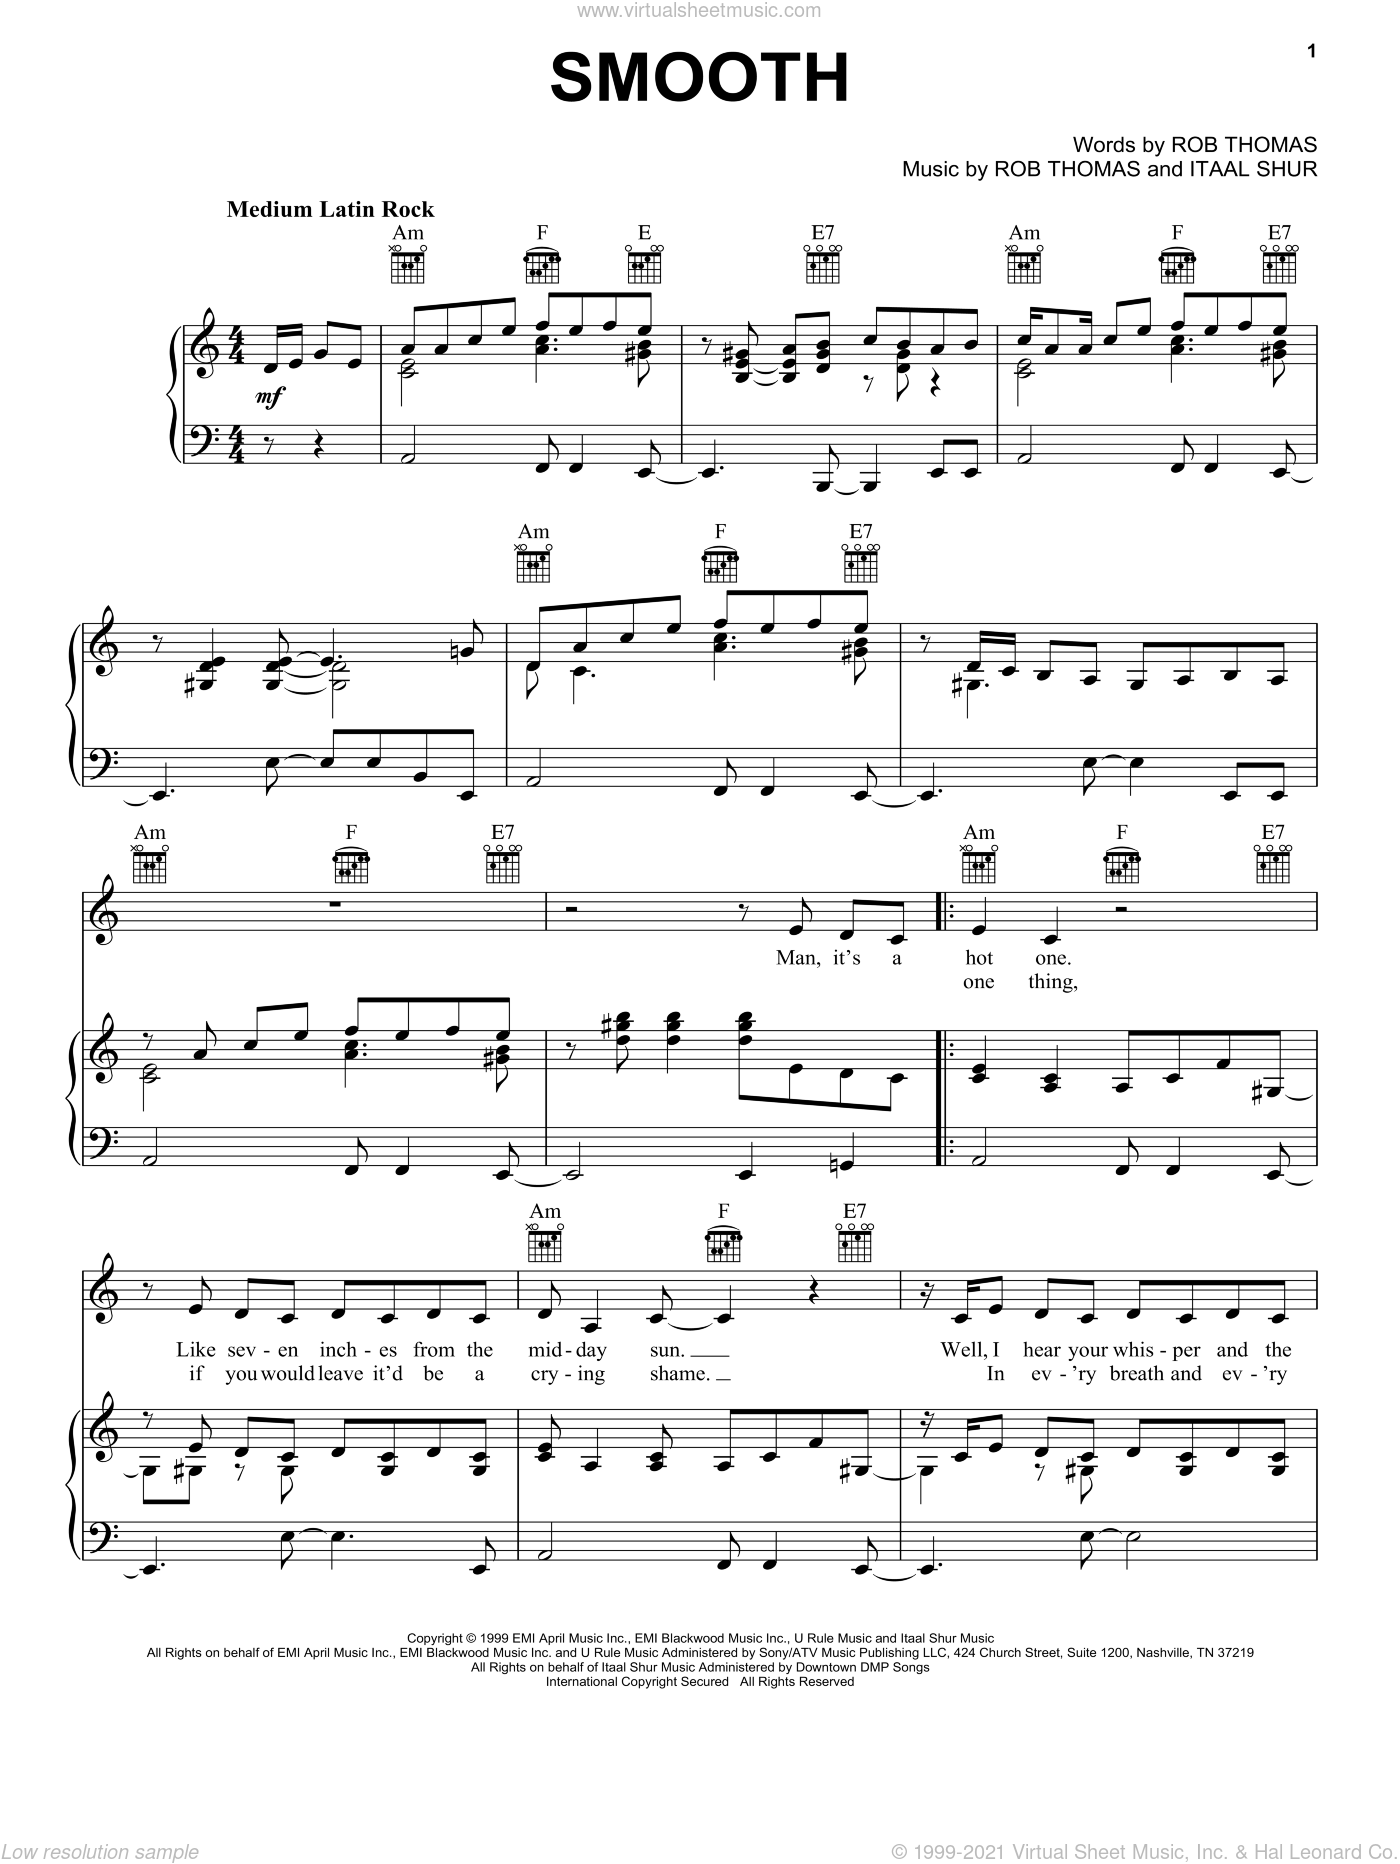 Smooth sheet music for voice, piano or guitar by Itaal Shur, Carlos Santana, Santana featuring Rob Thomas and Rob Thomas. Score Image Preview.